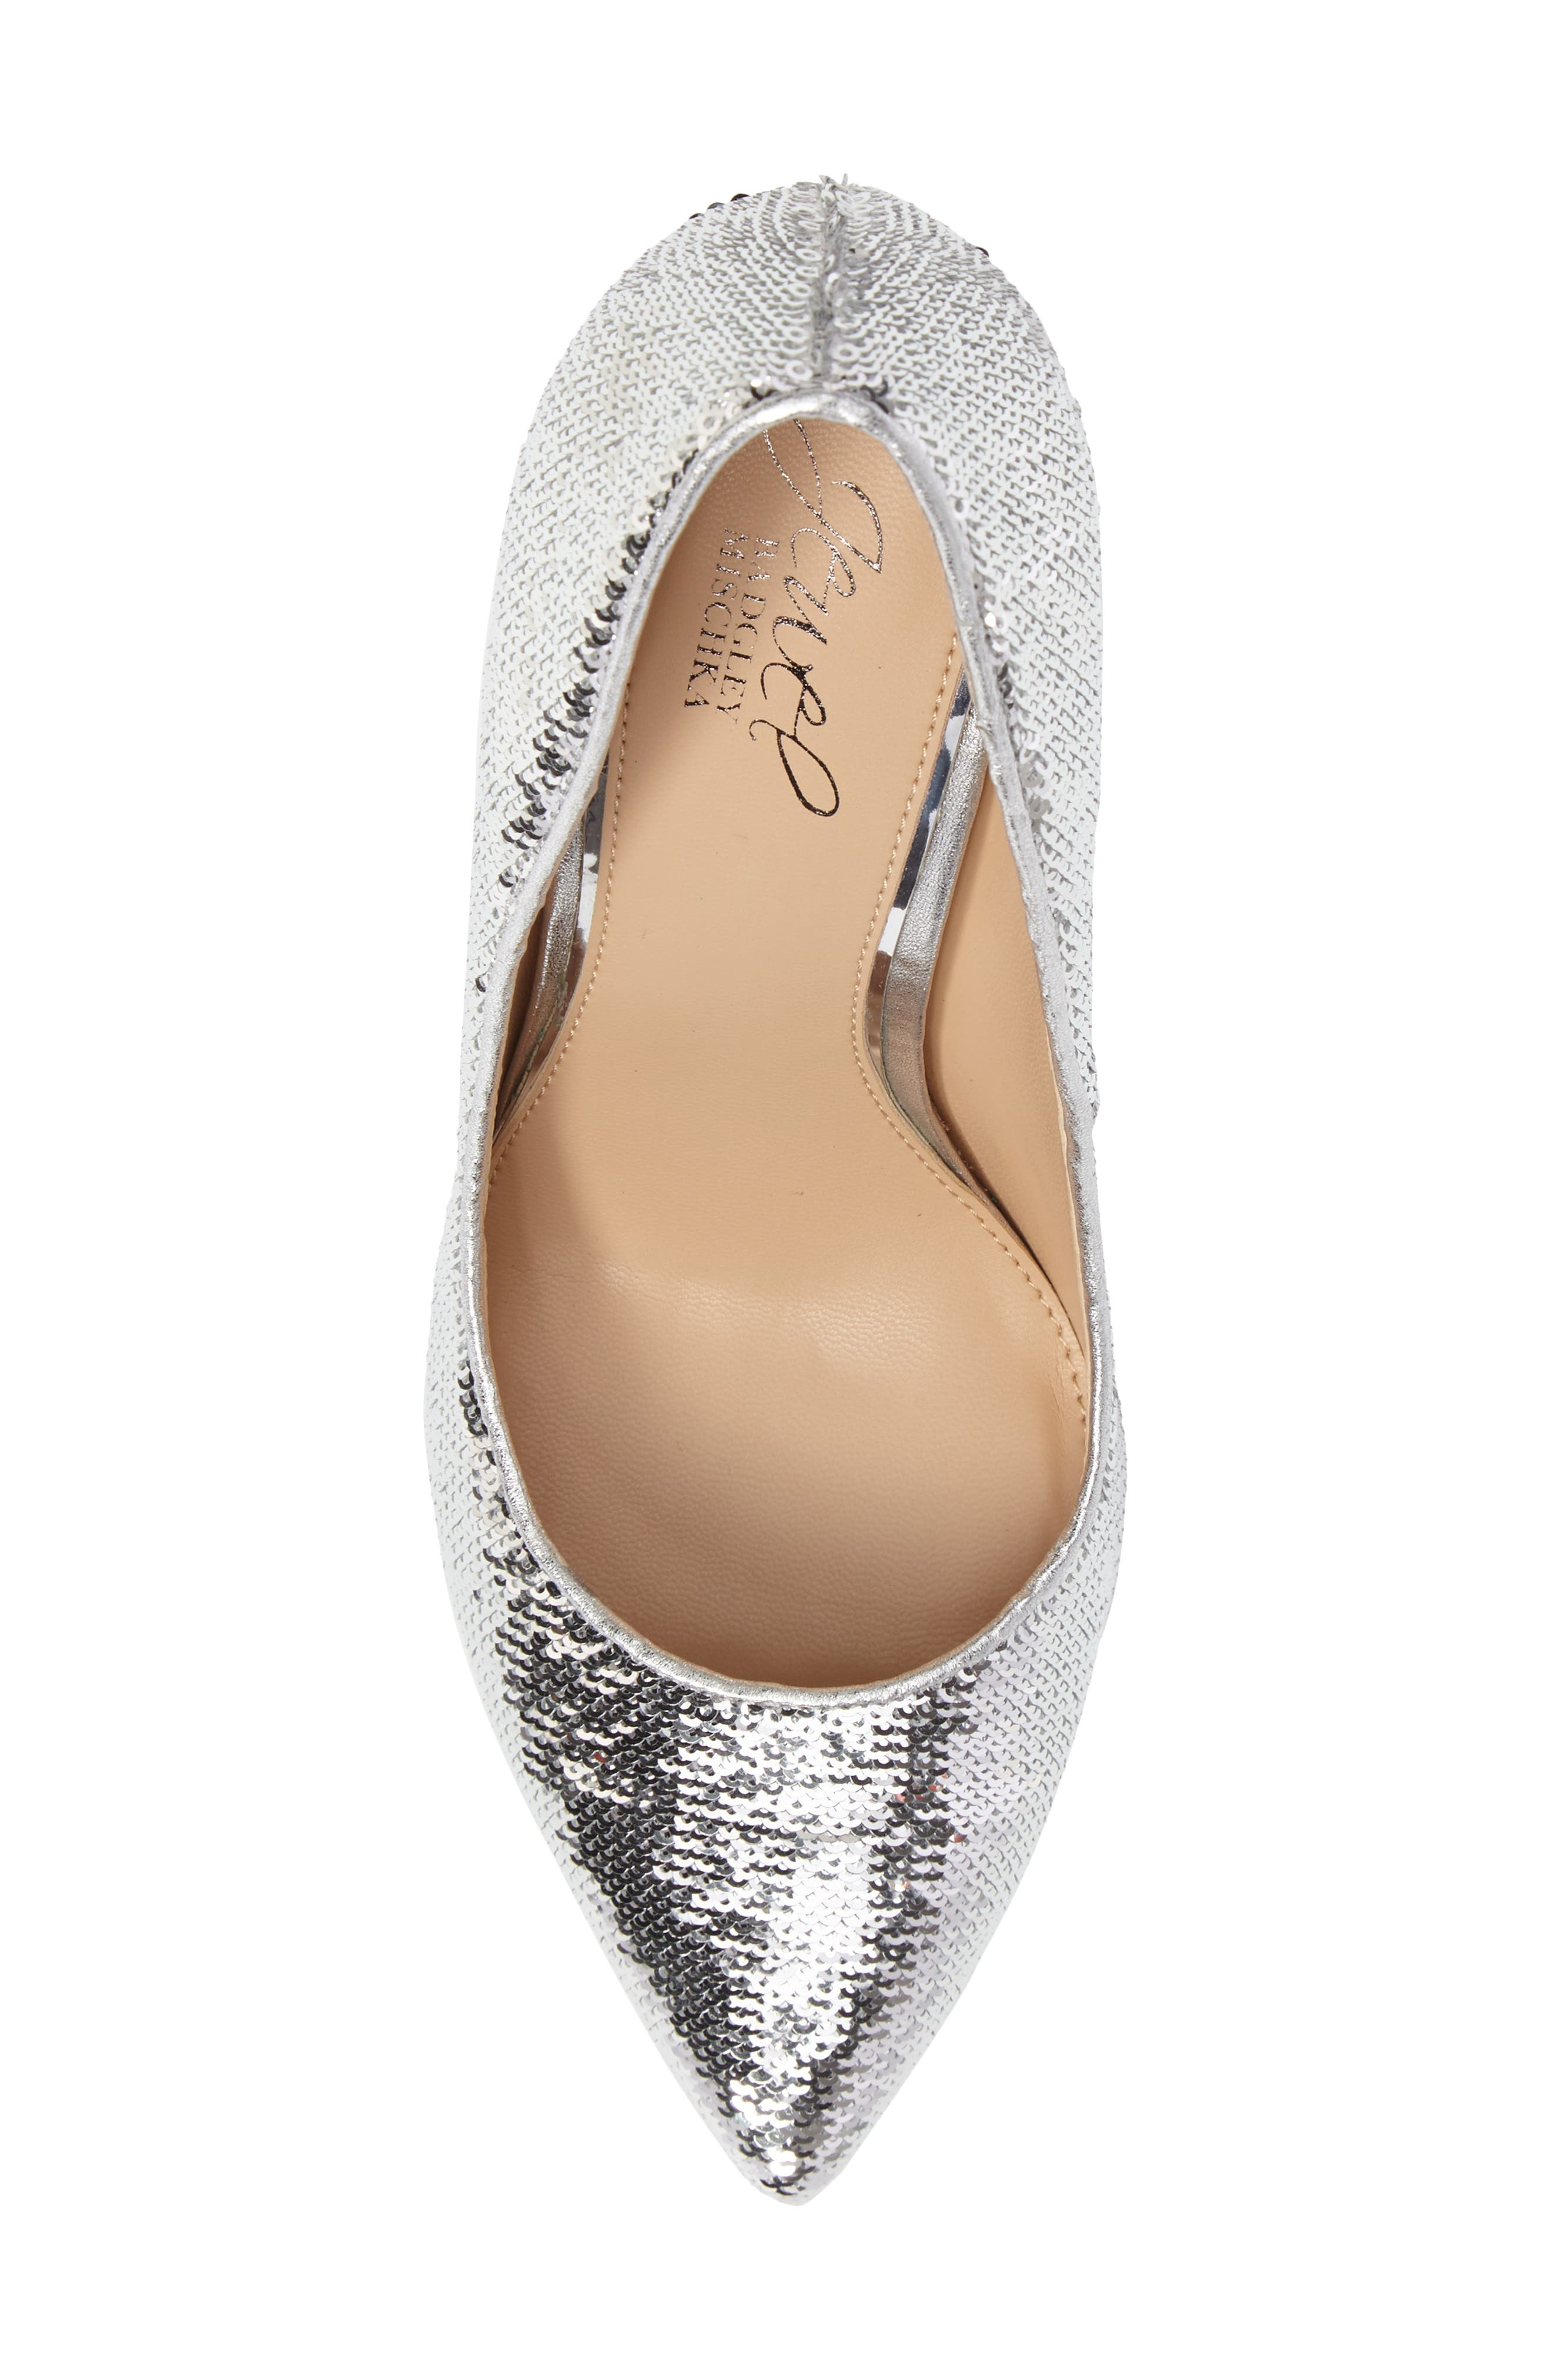 Luxury Pointy Toe Pump,                             Alternate thumbnail 5, color,                             Silver Leather